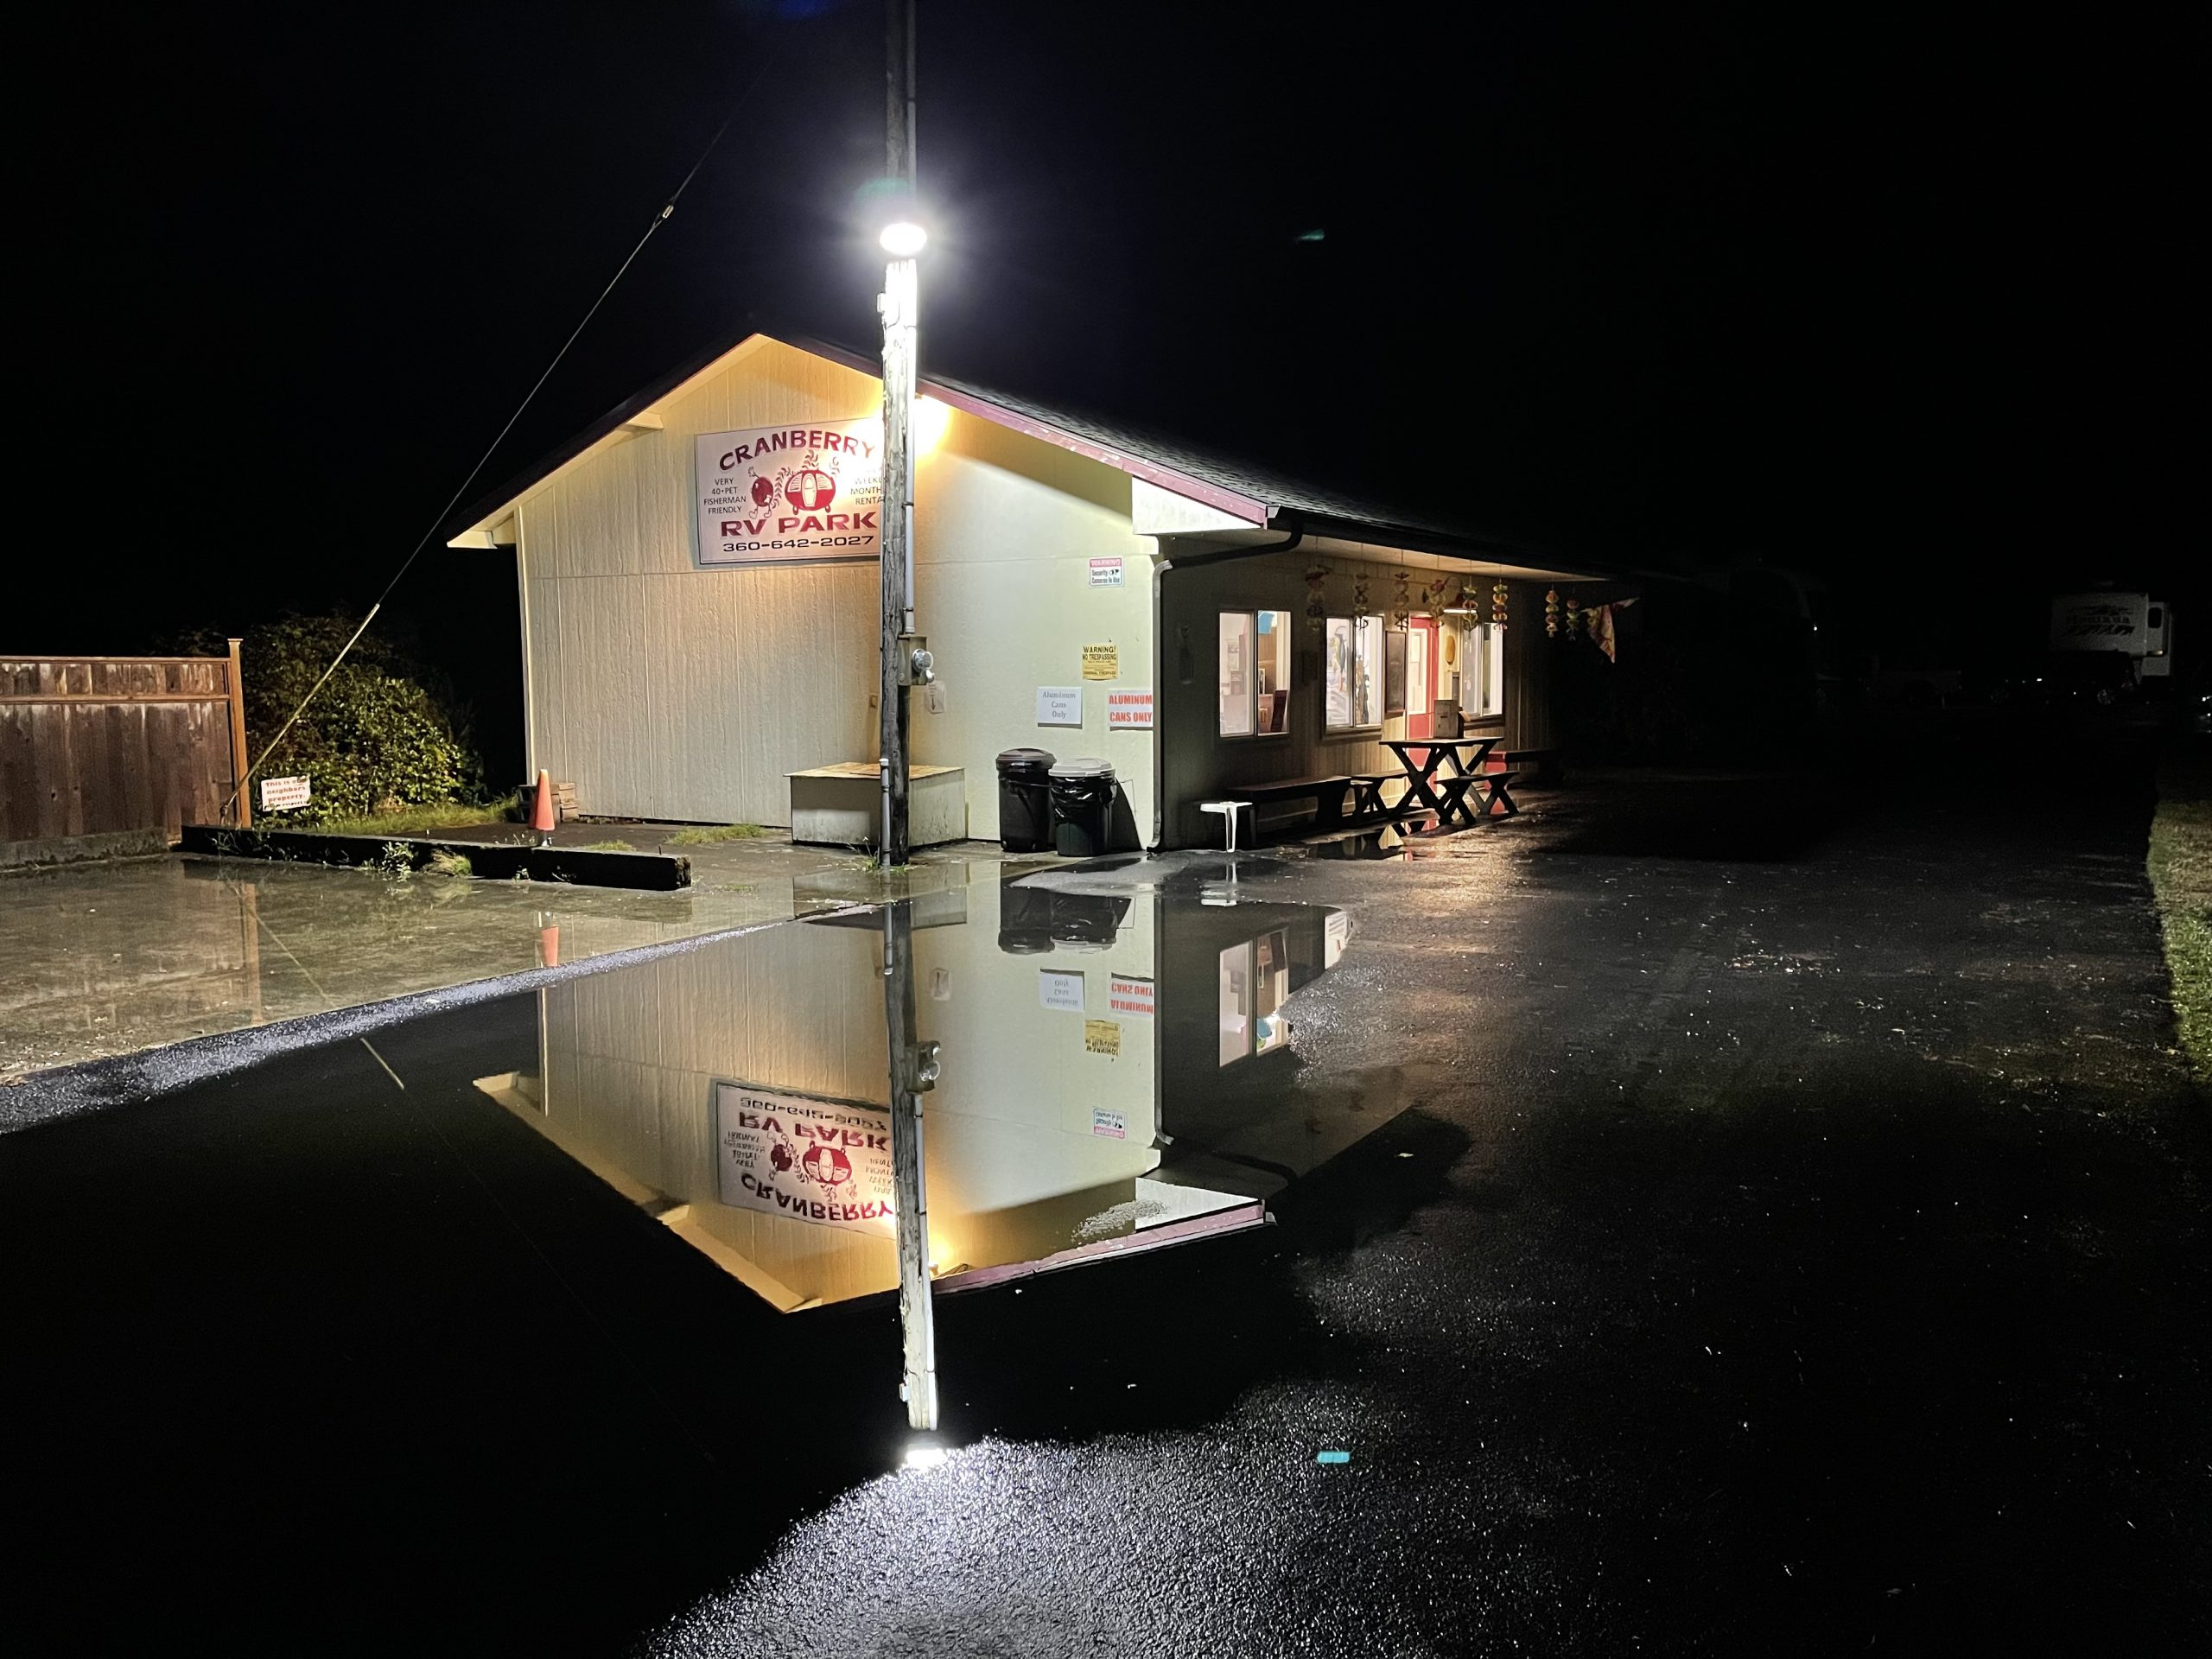 Cranberry RV Park at night after the rain